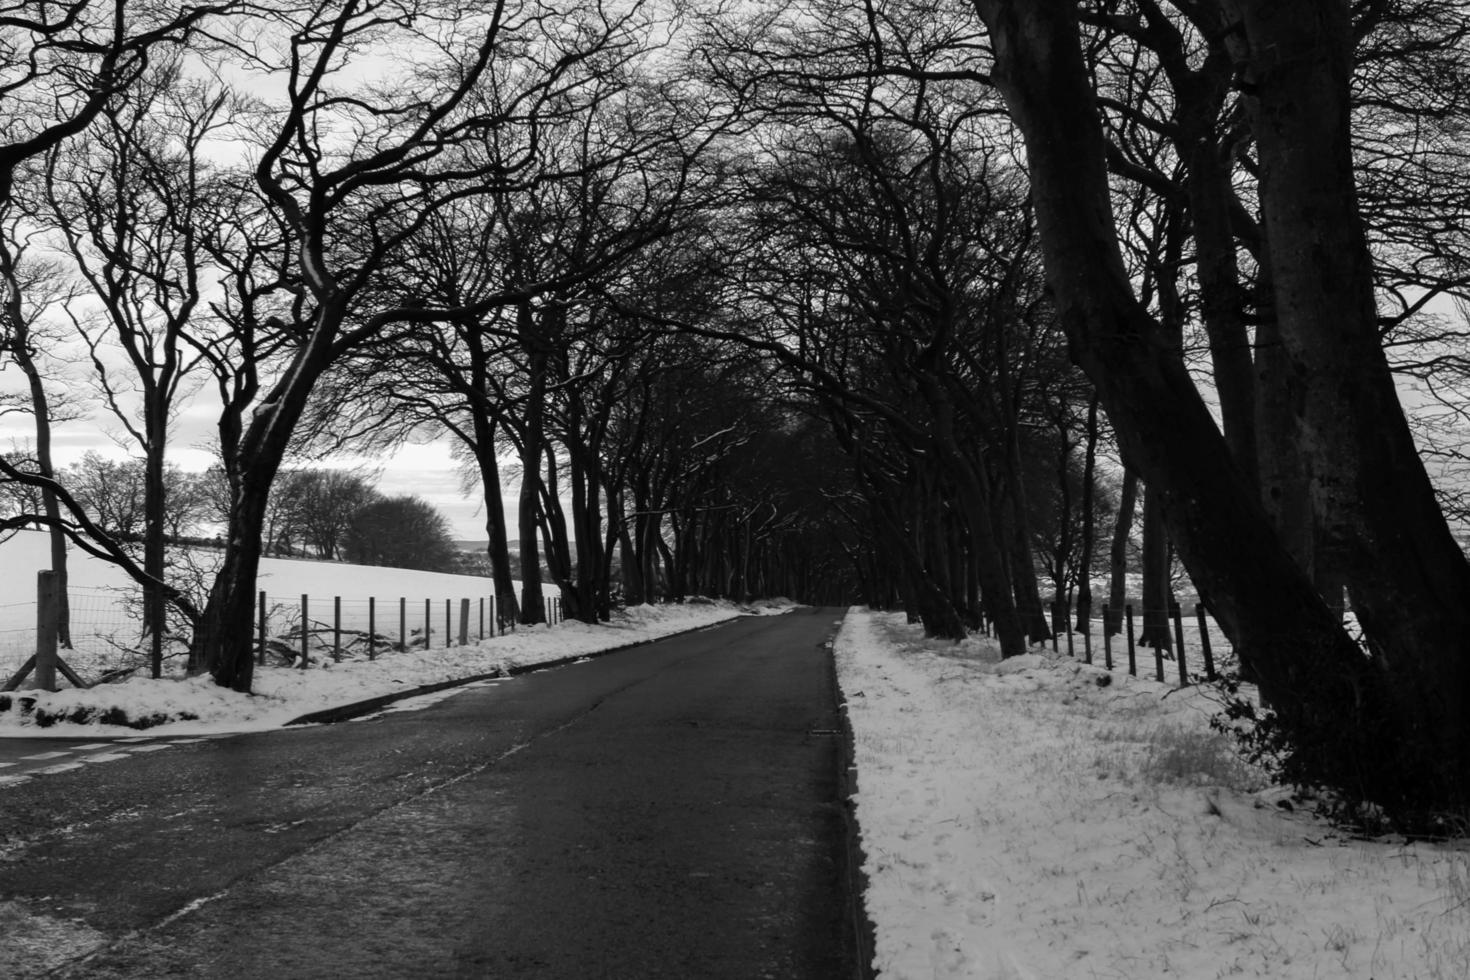 Grayscale photo of road between snow-covered landscape